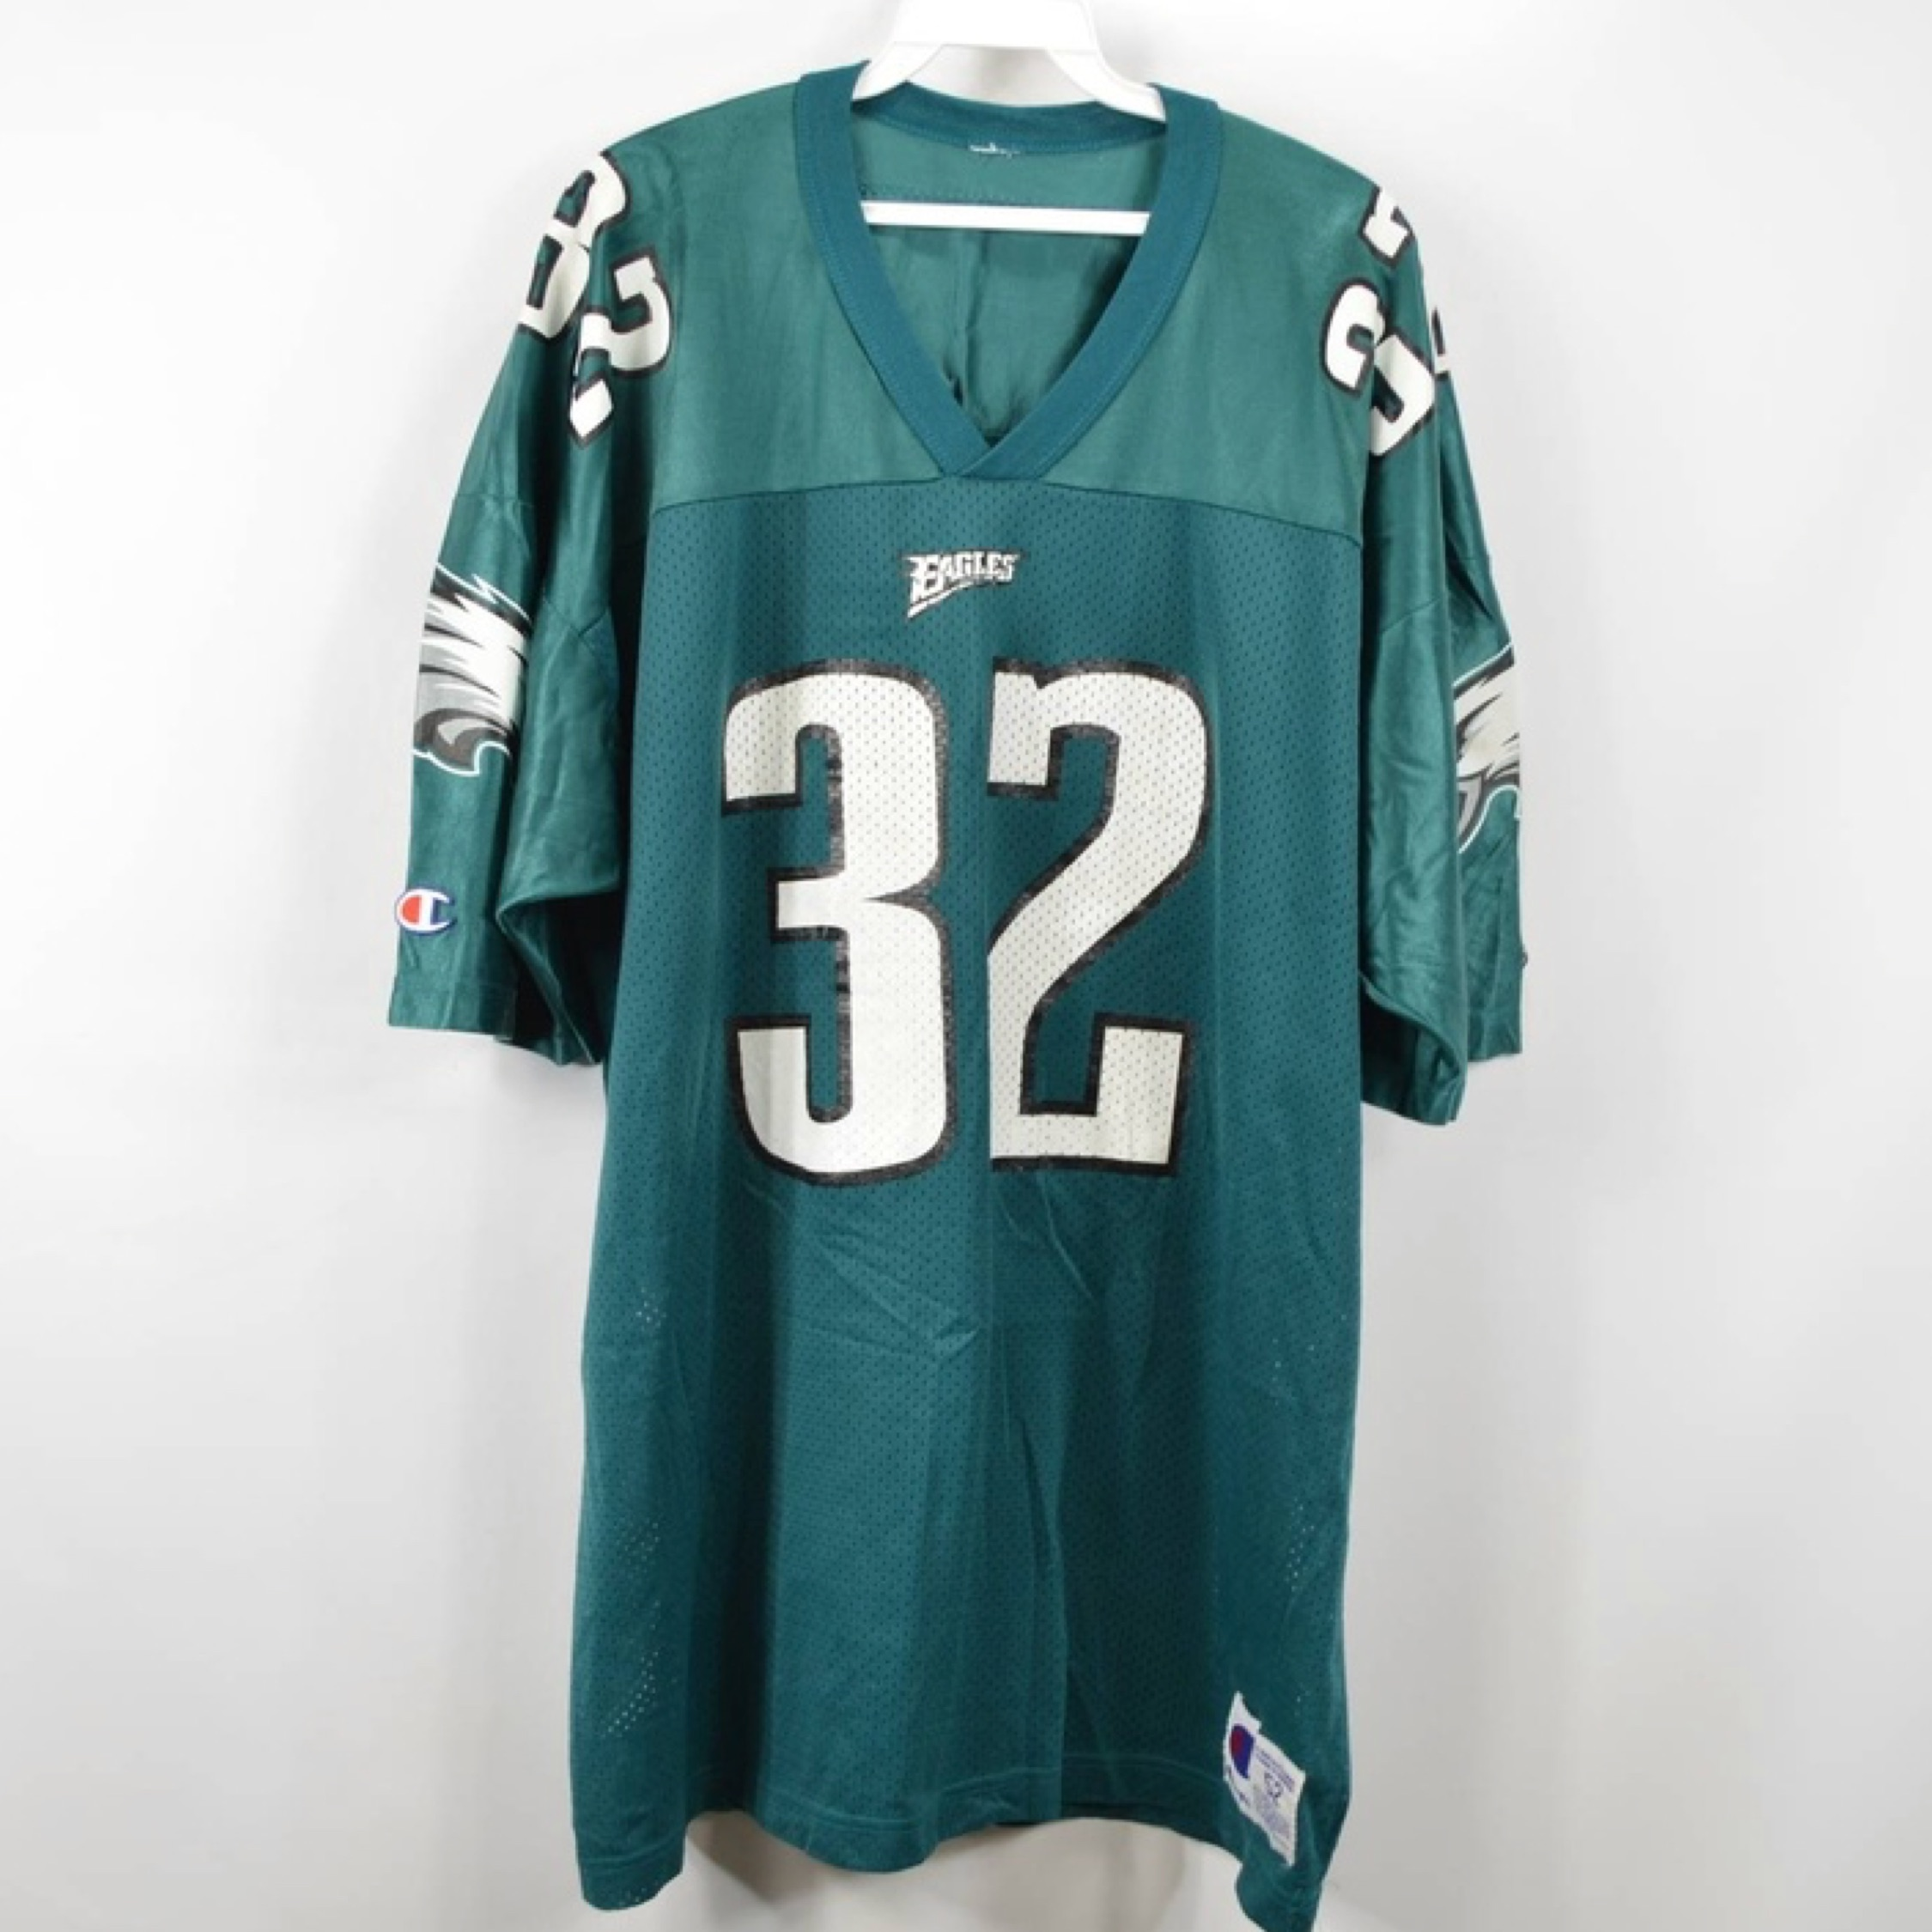 reputable site 66f51 13628 Champion Vintage Usa Football Jersey Eagles